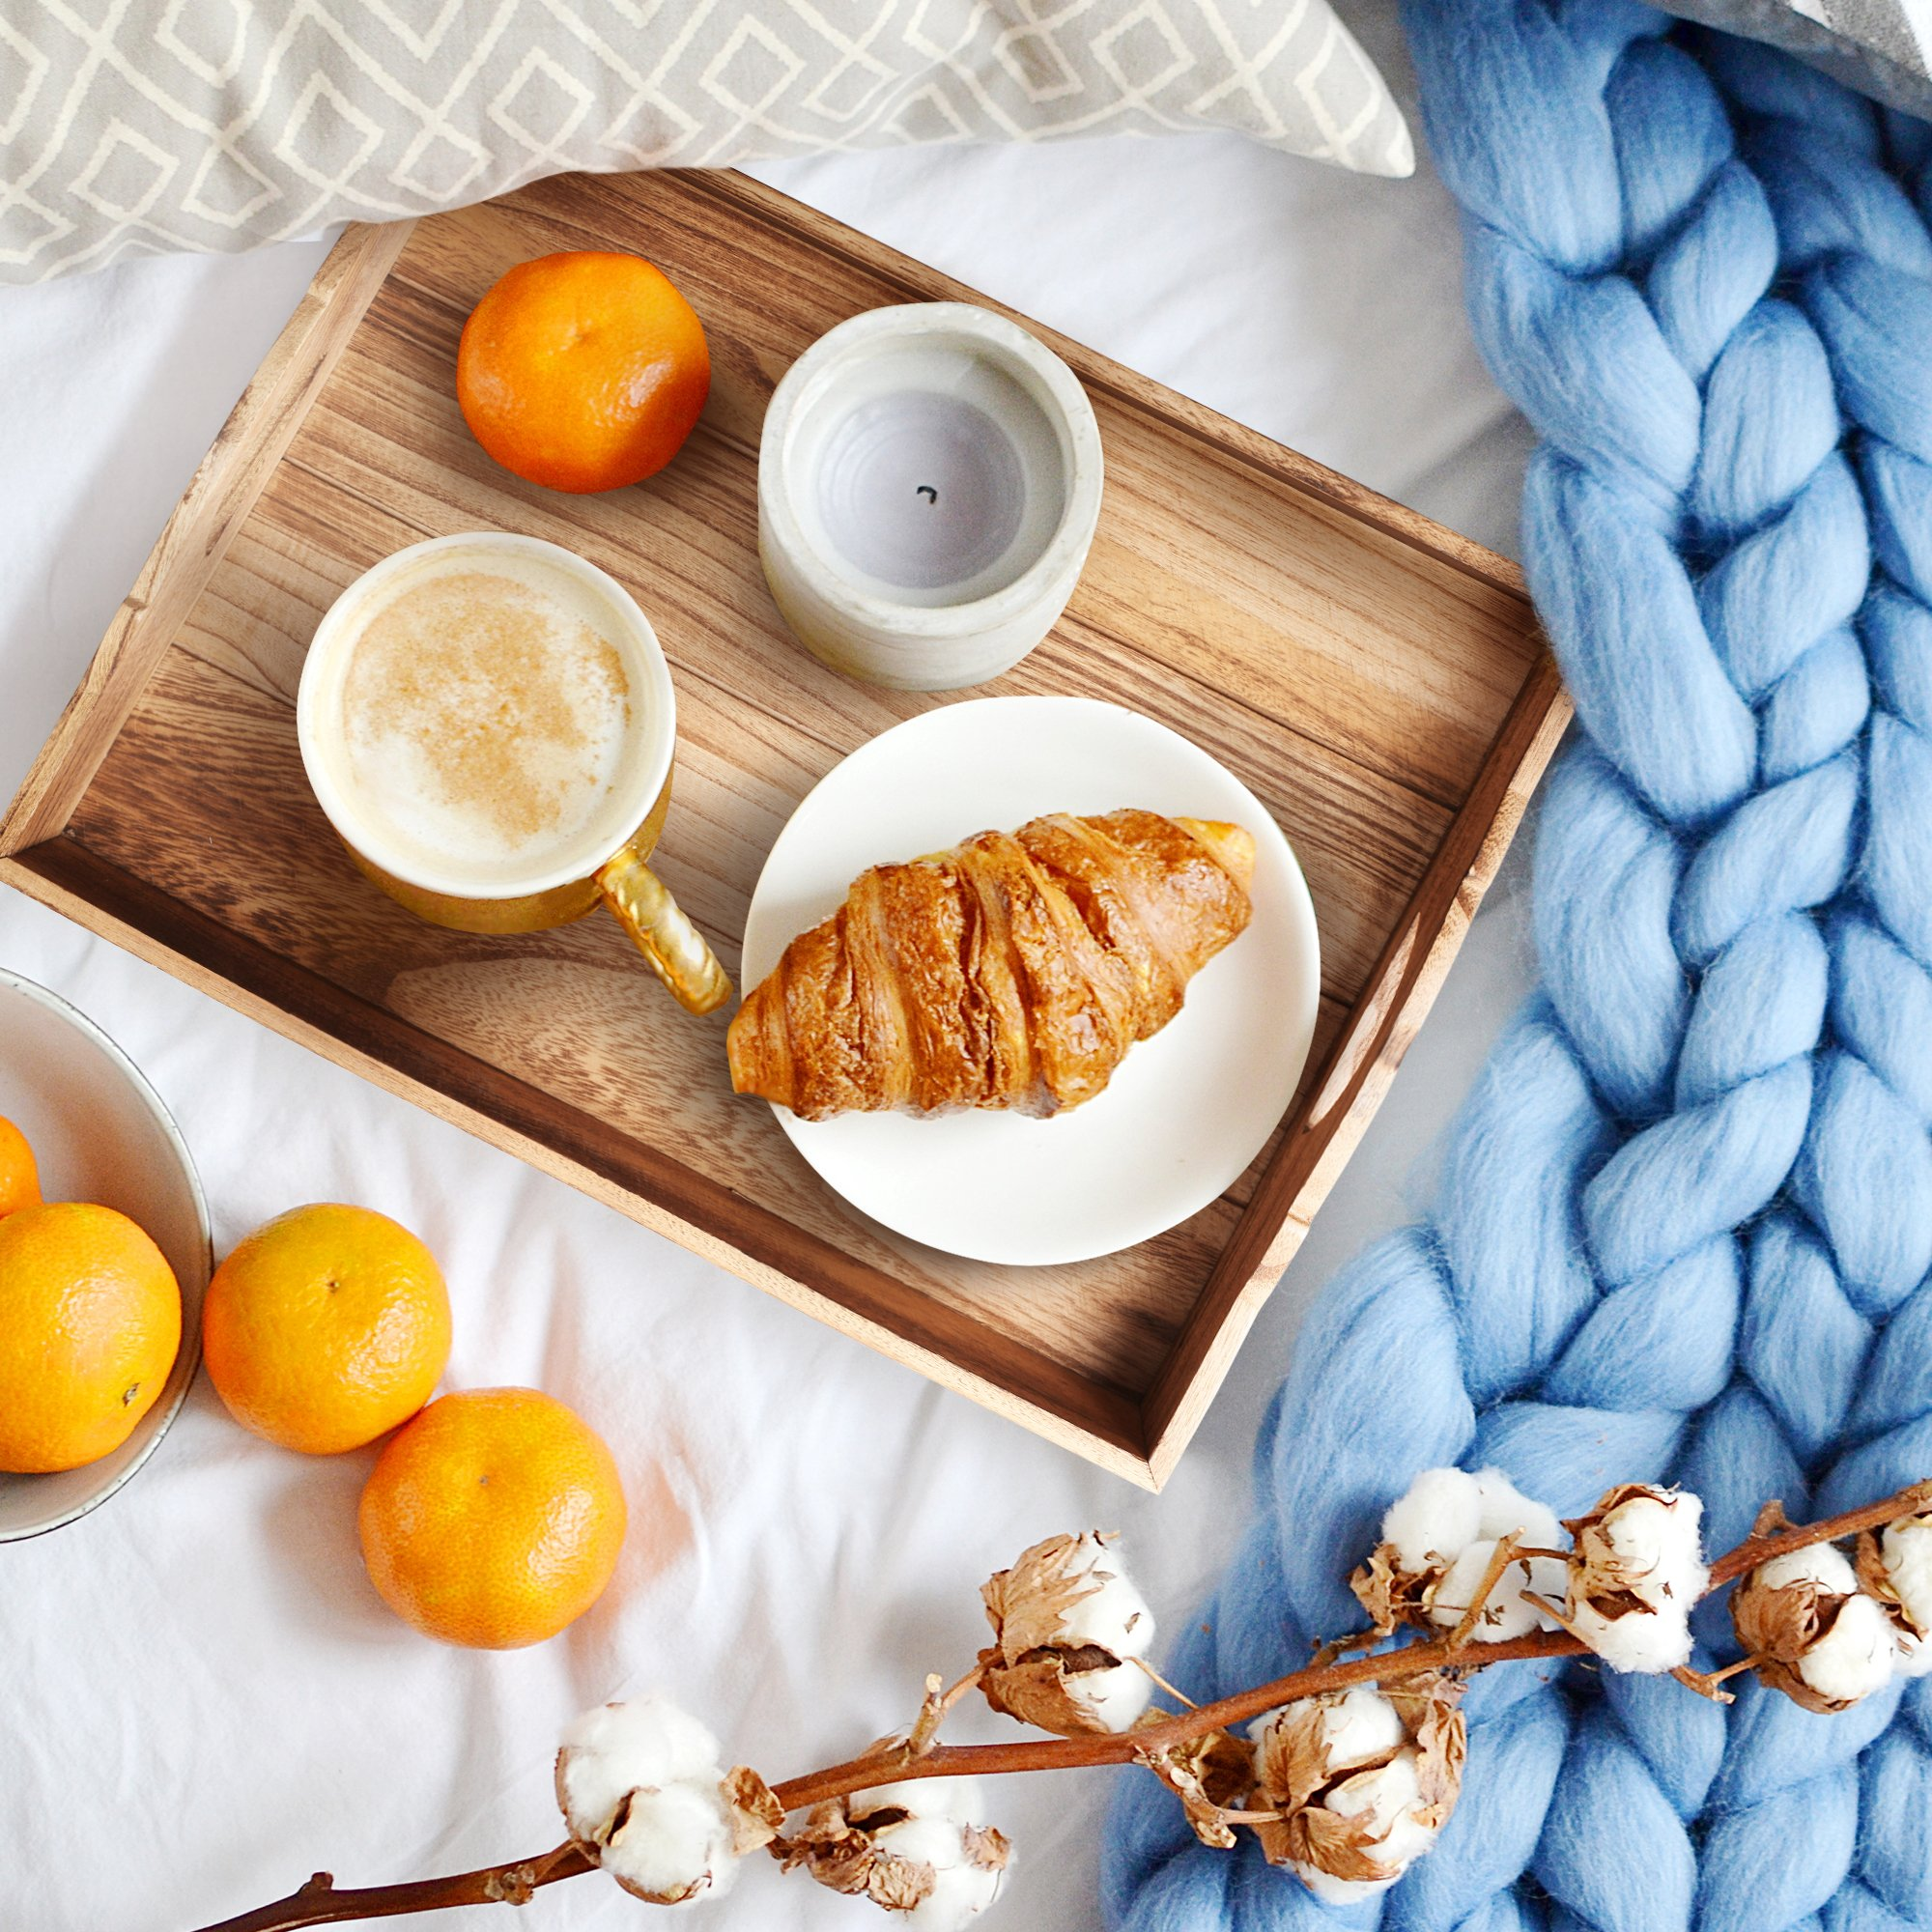 Wood Serving Tray – Suitable for use as an Ottoman Tray, Breakfast in Bed Tray and Home Décor Style Piece – Easy to Carry Handles – 18 x 14 inches – Natural Wood + FREE Home Décor eBook by lifetoenjoy (Image #6)